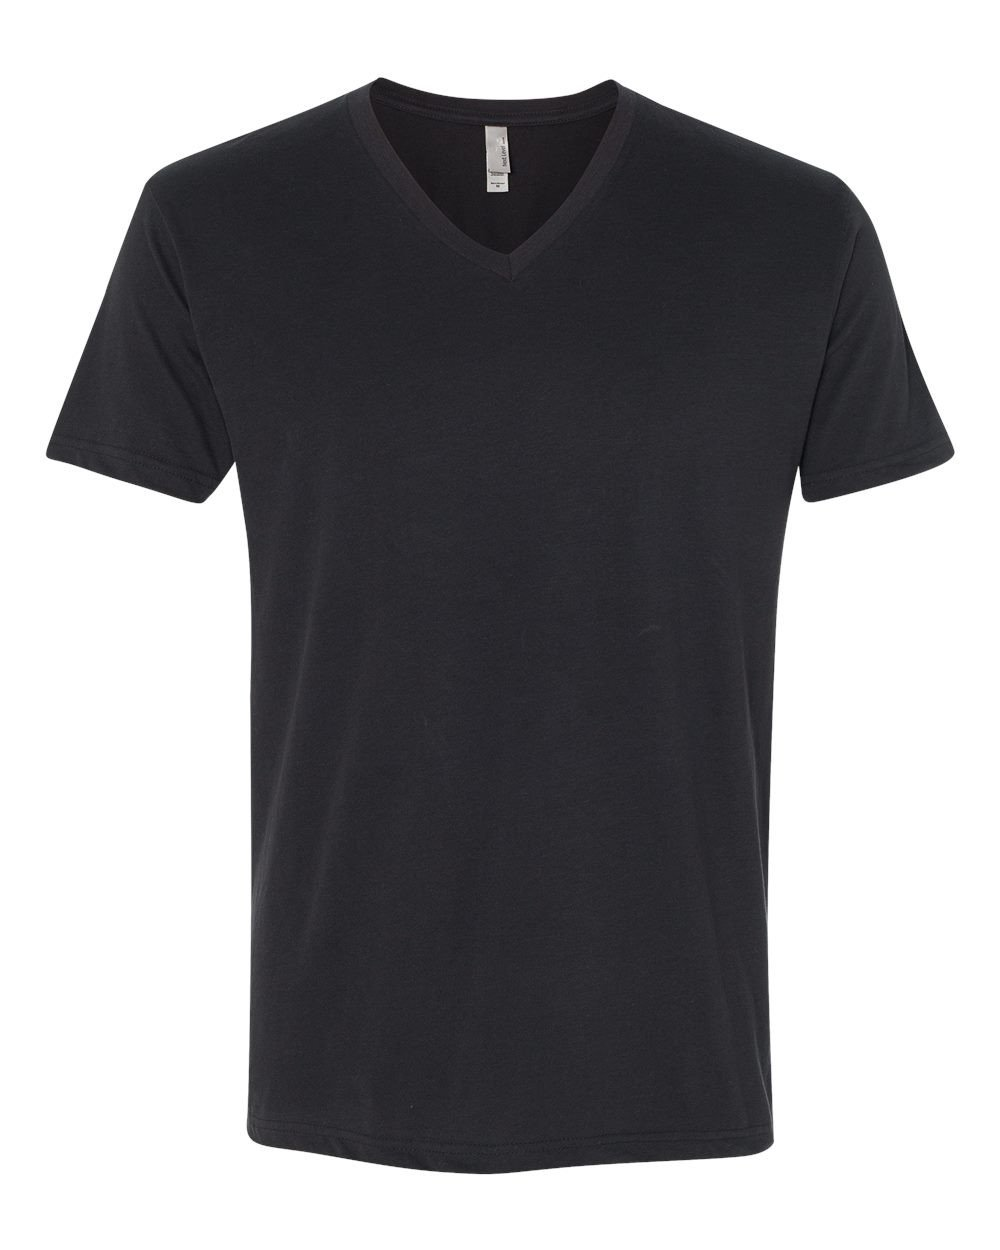 Next Level Apparel 6440 Mens Premium Fitted Sueded V-Neck Tee - Black, Large by Next Level